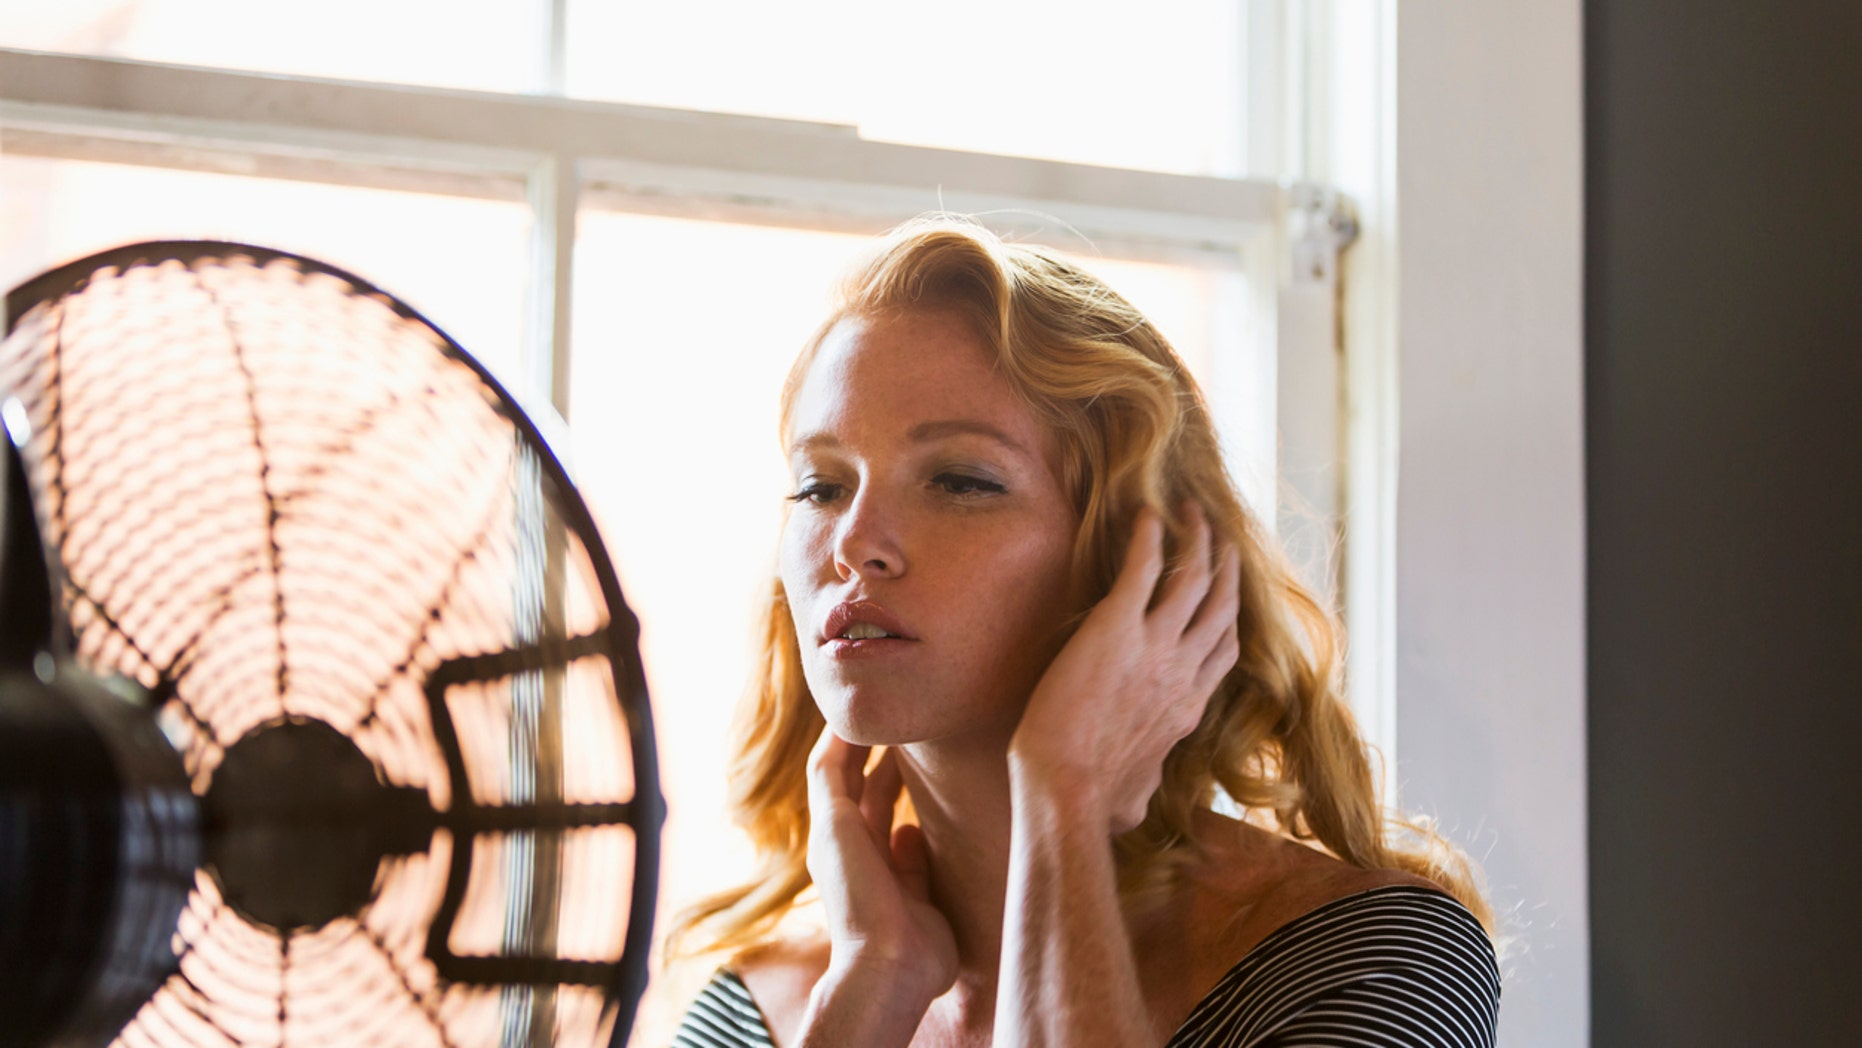 In the heat of summer months, fans don't always suffice in keeping you - and your home - cool.